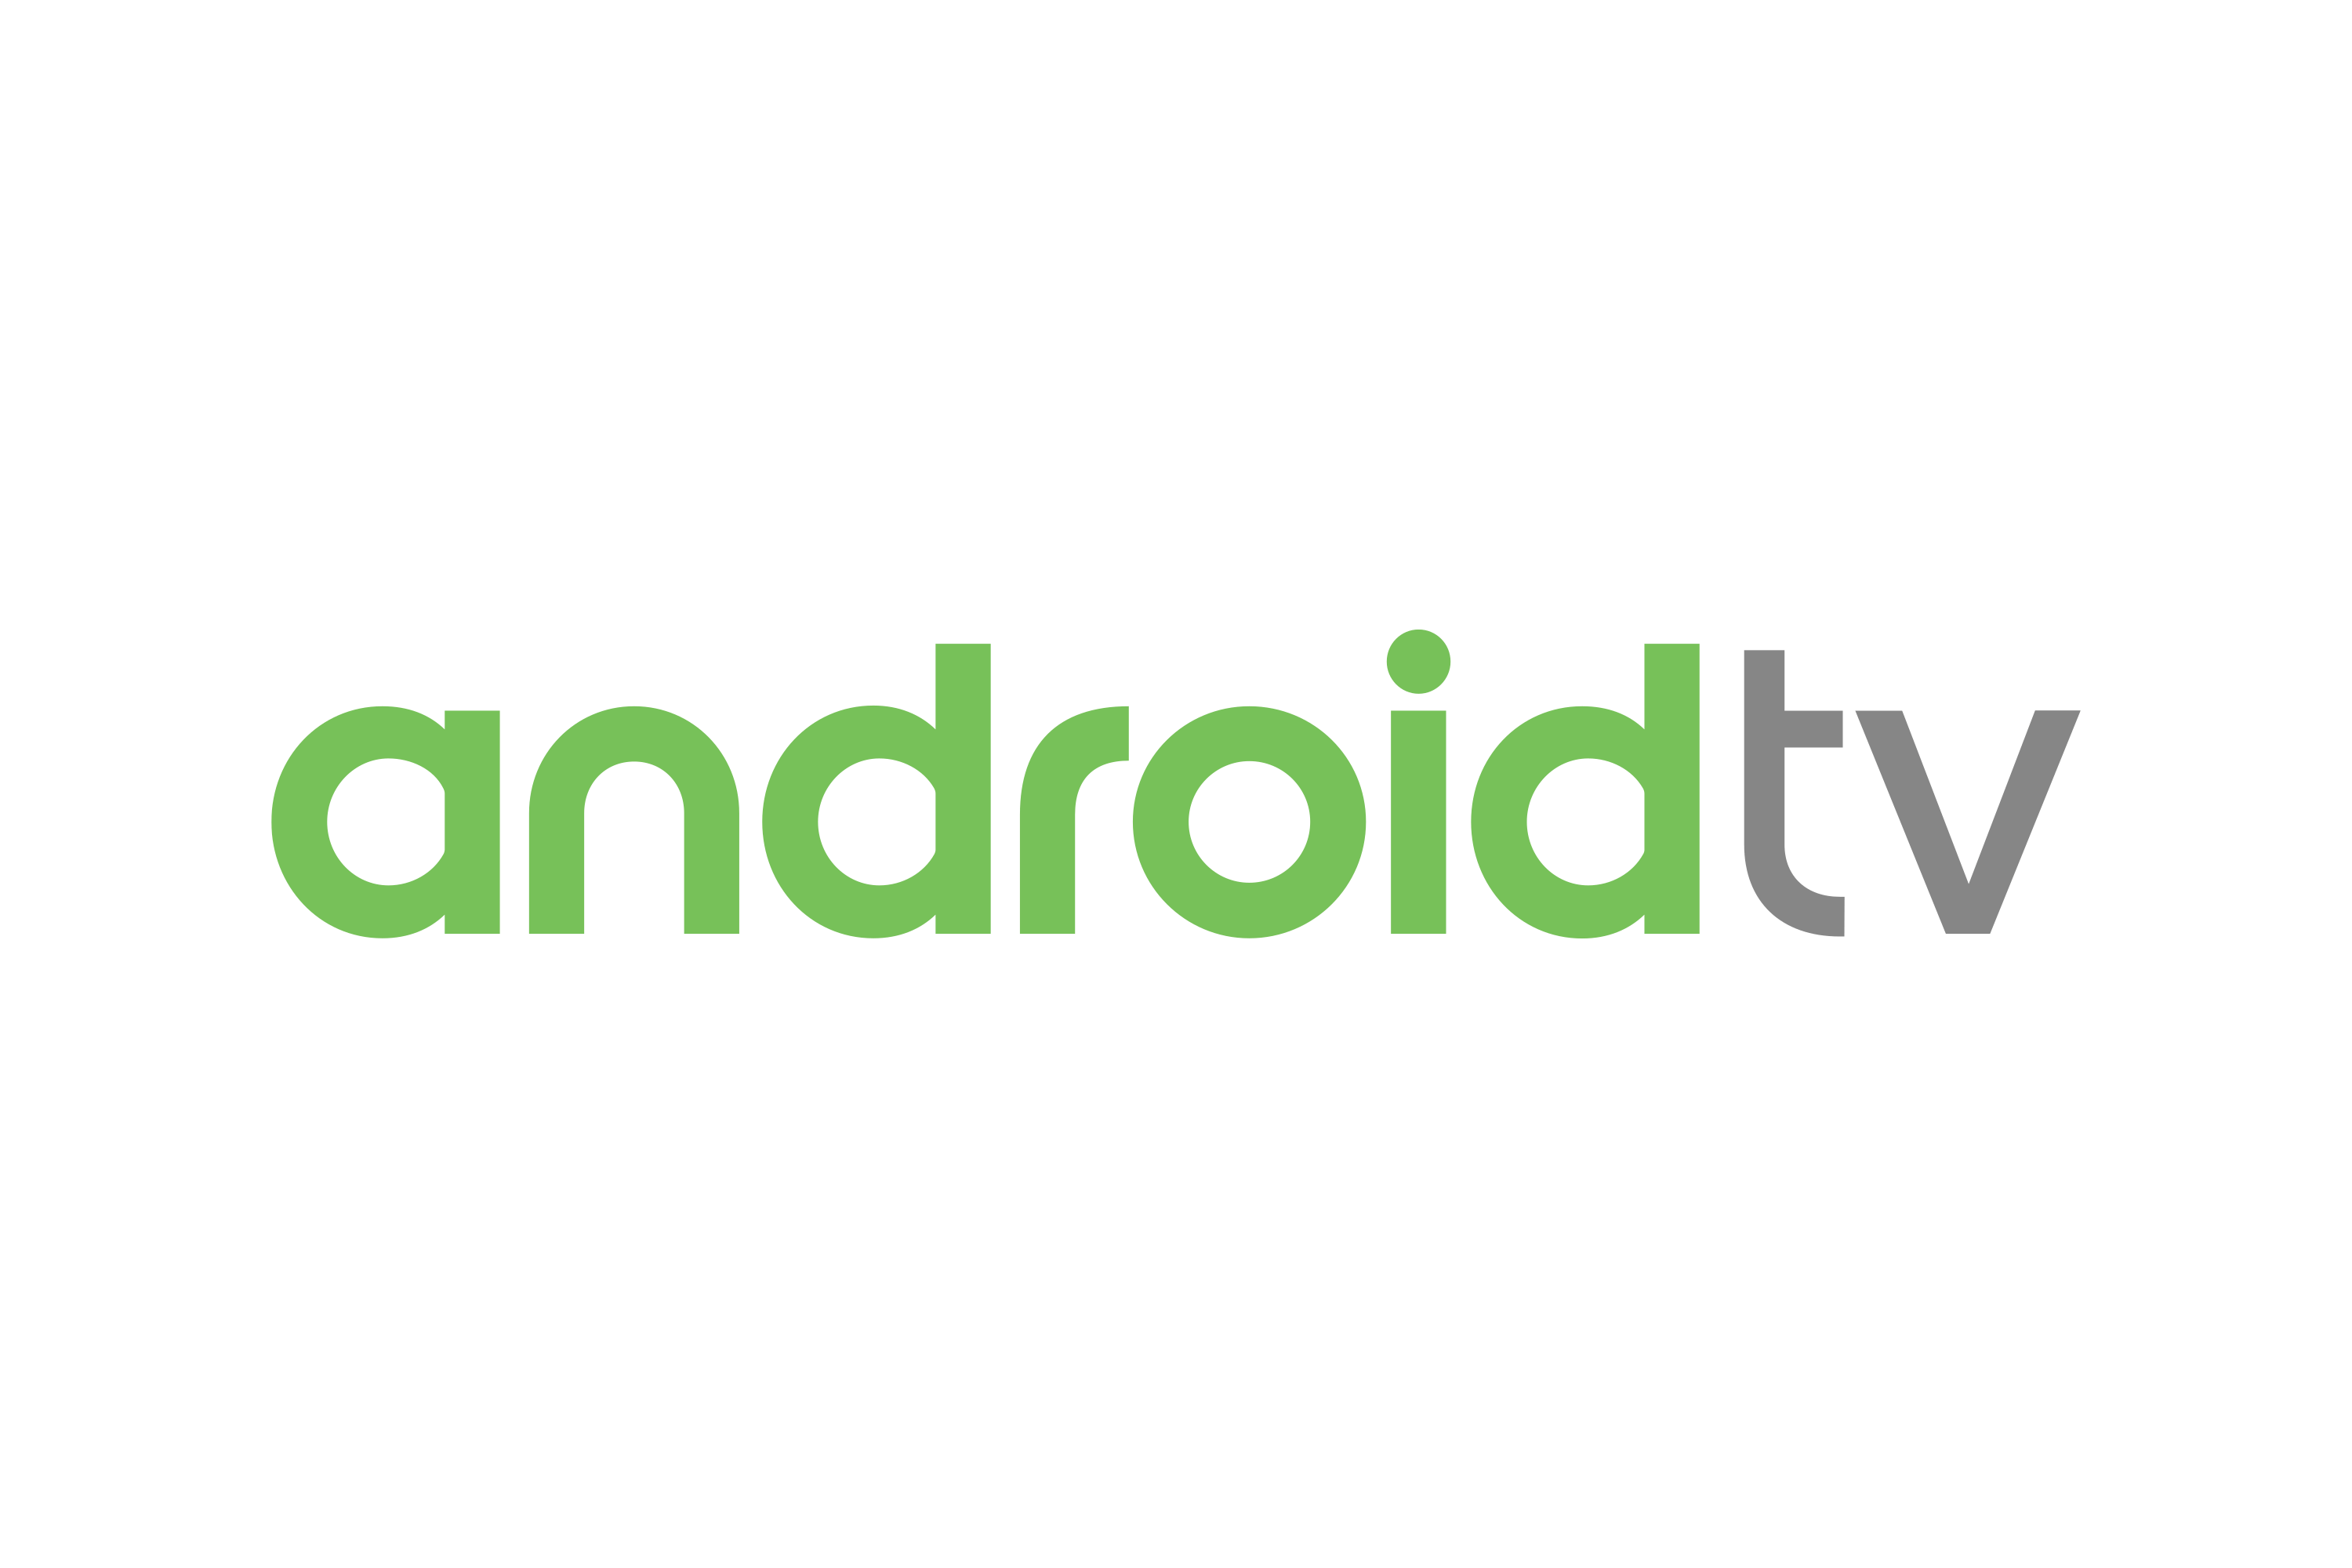 Android_TV.png